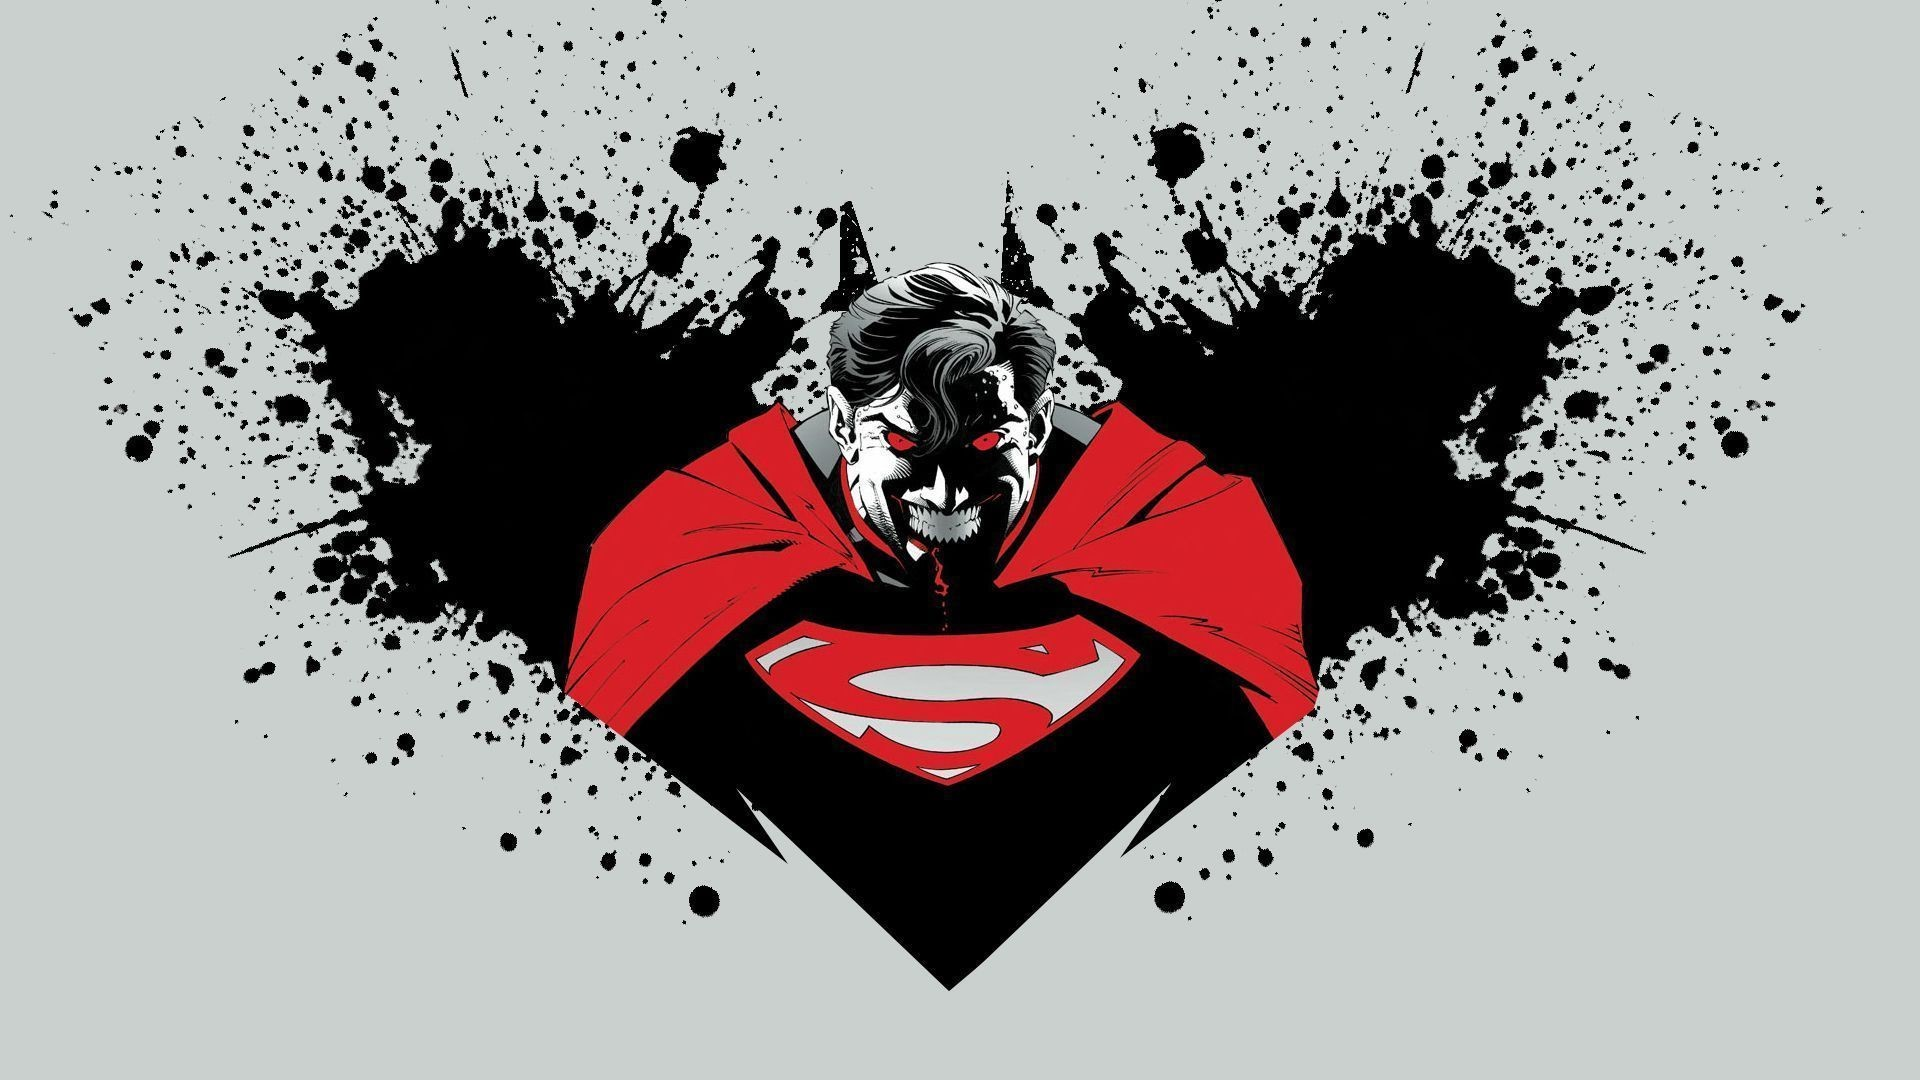 1920x1080 Superman Batman Logo Wallpaper High Quality #4h0 ~ Movie Wallpaper .